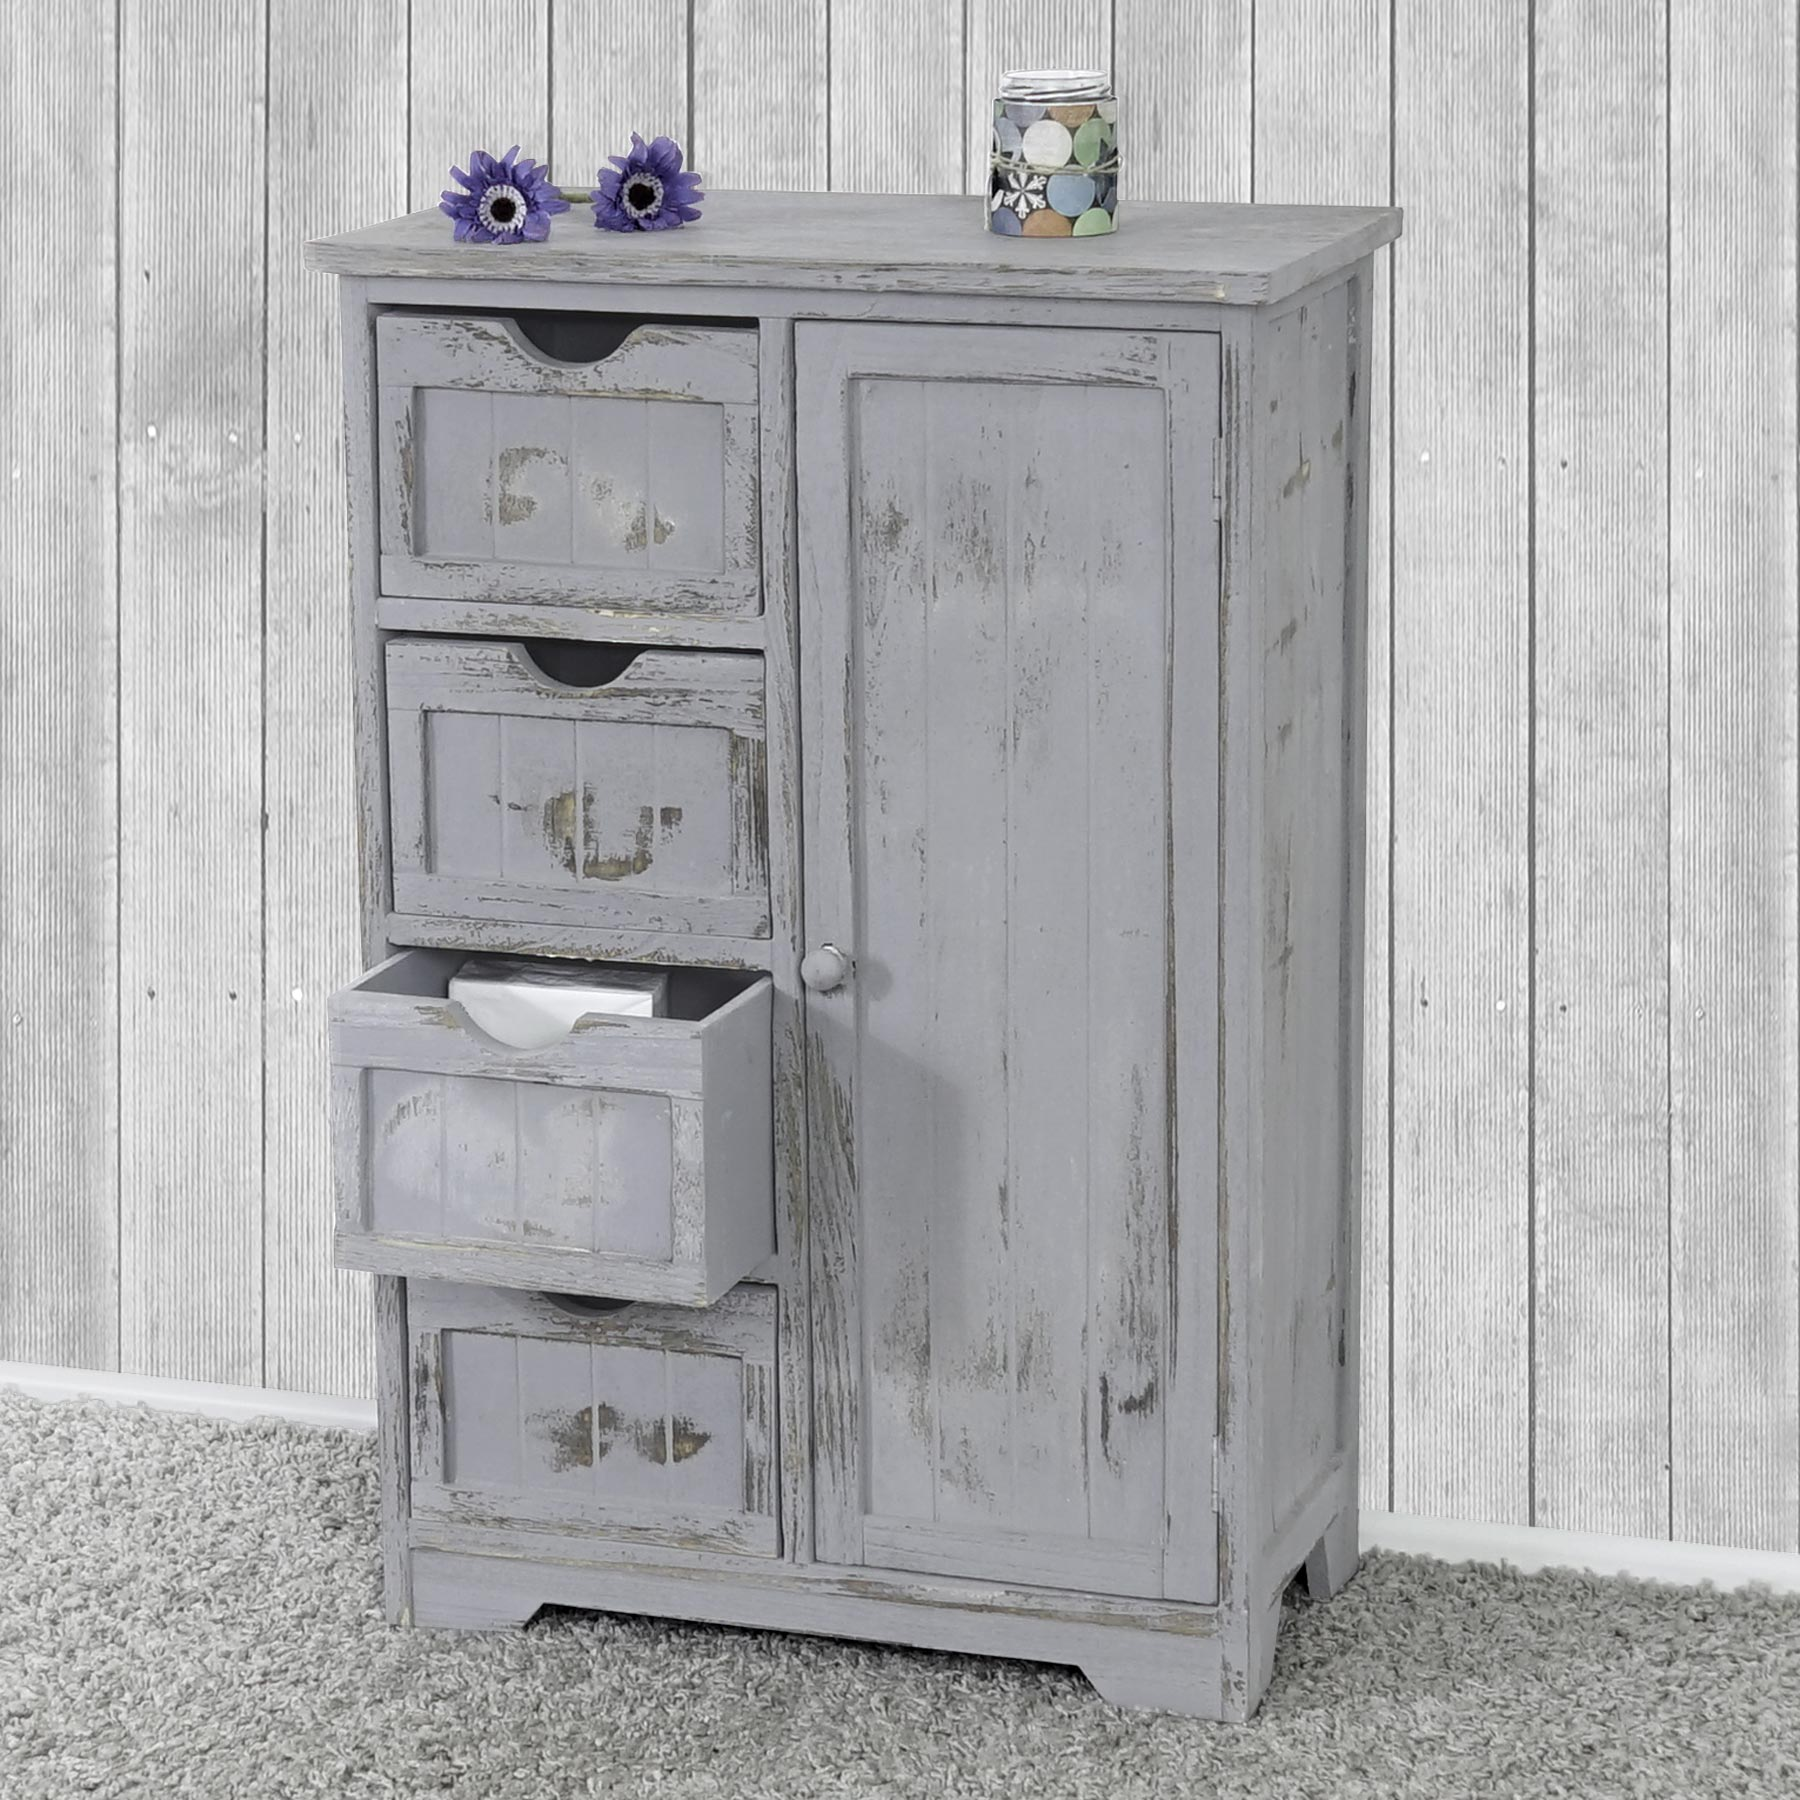 kommode schrank 82x55x30cm shabby look vintage grau ebay. Black Bedroom Furniture Sets. Home Design Ideas